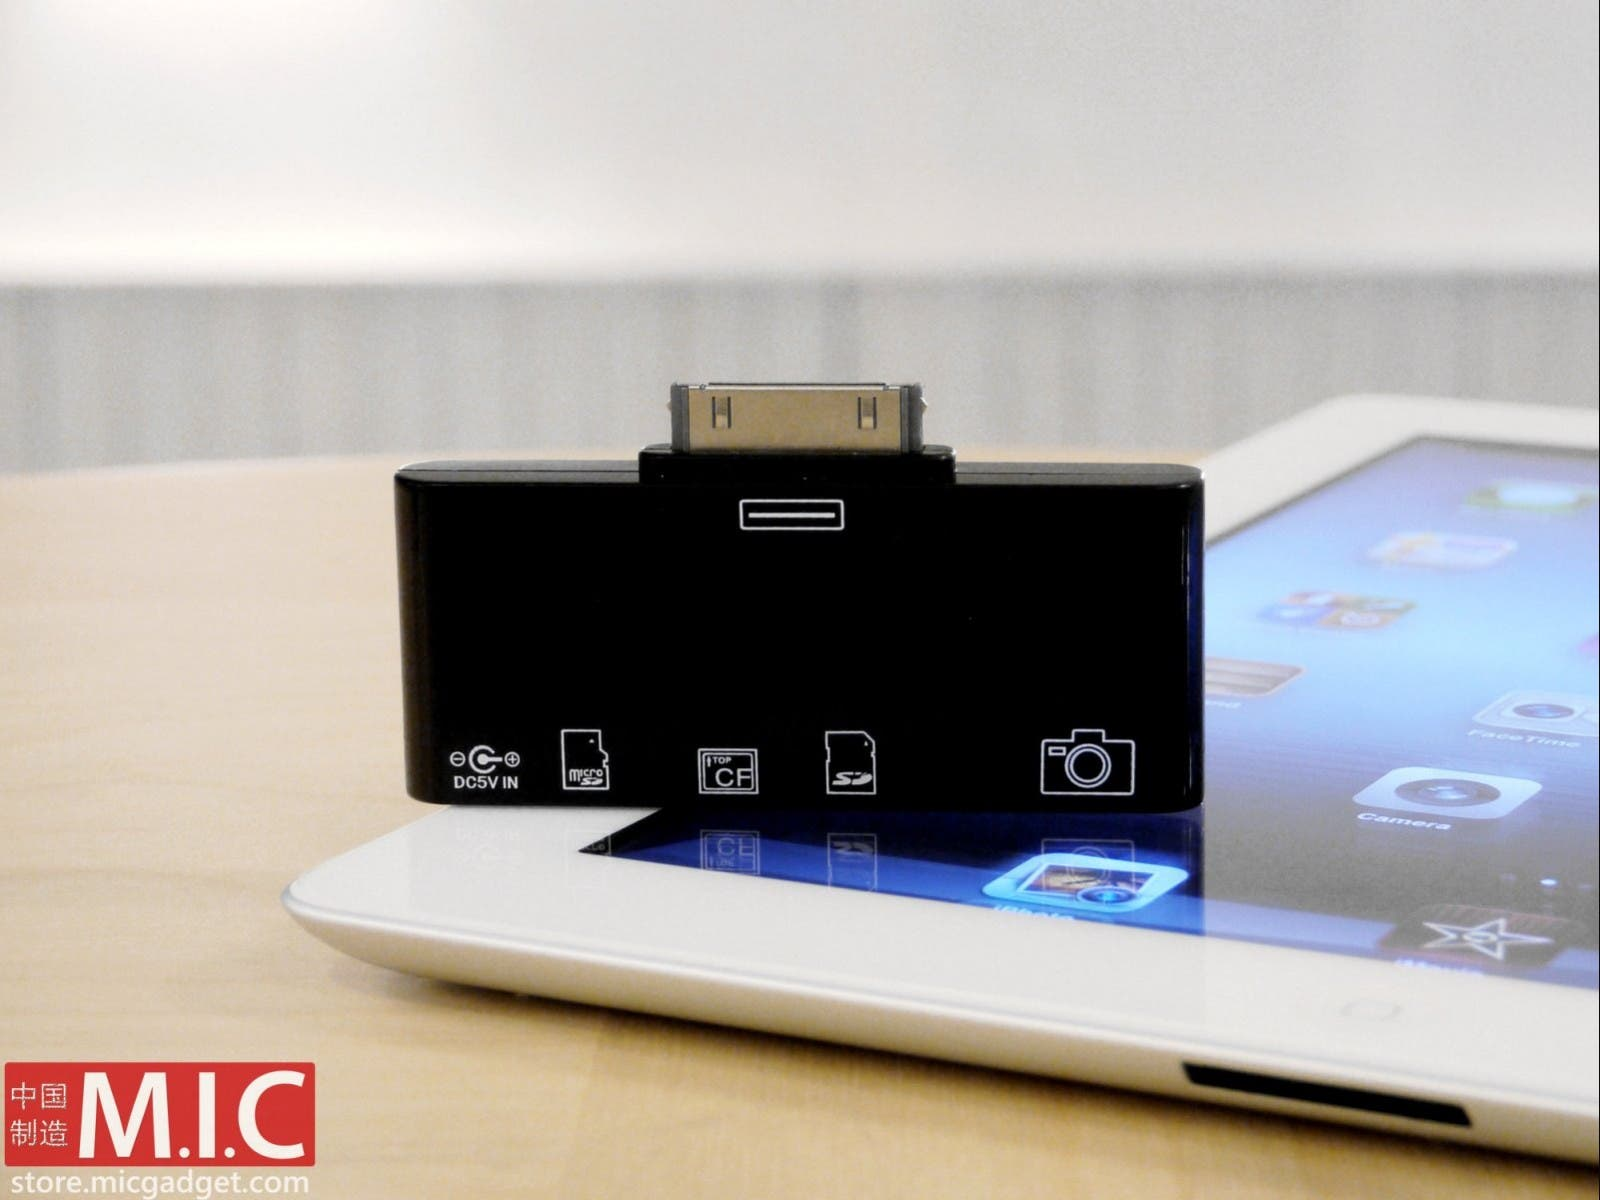 M.I.C. Gadget Introduces First All-in-one Card Reader For iPad